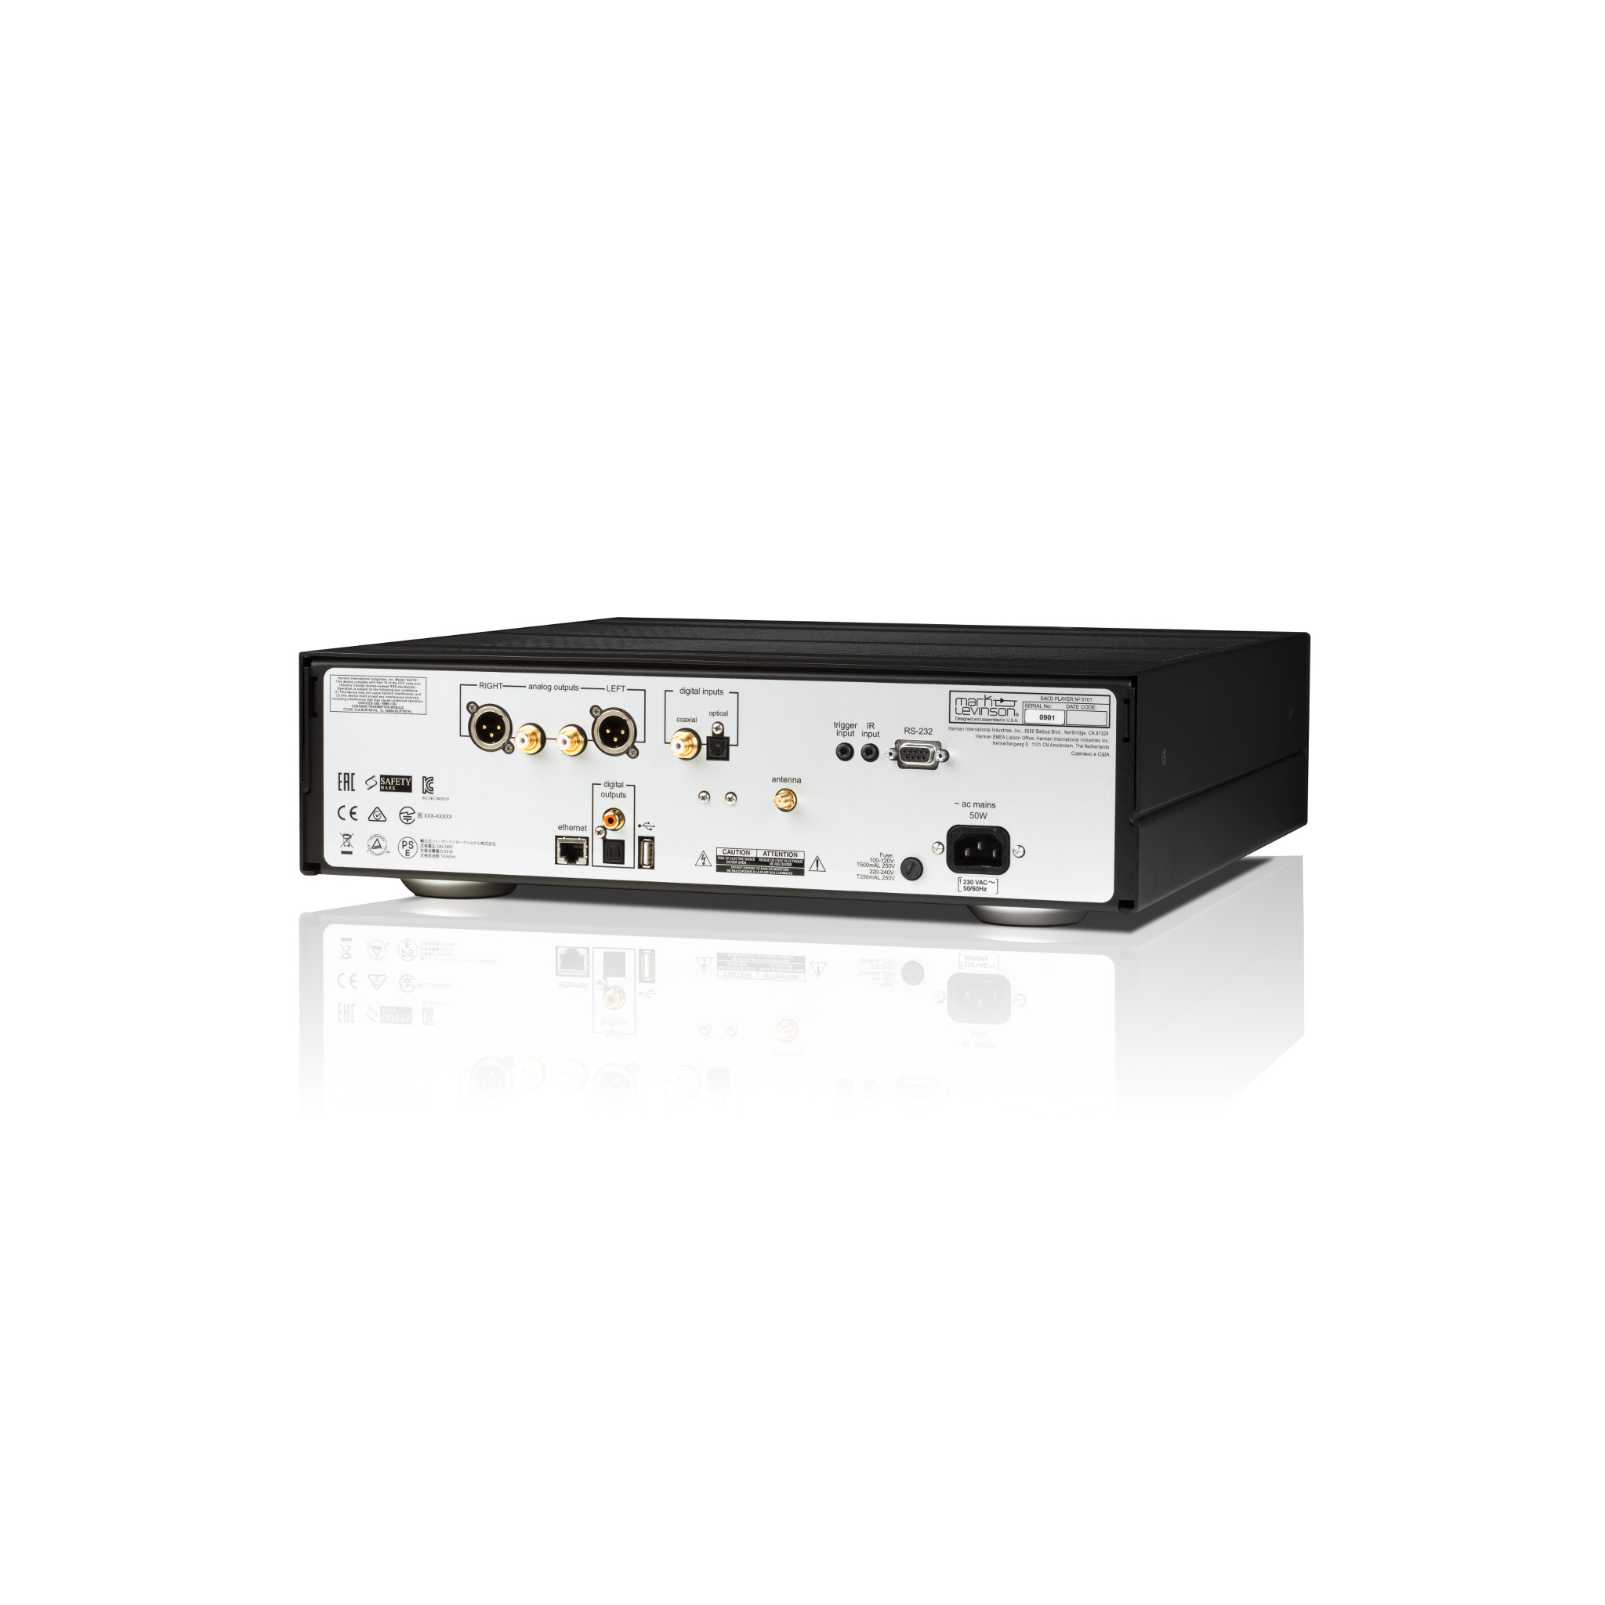 № 5101 - Black - Network Streaming SACD Player and DAC - Back